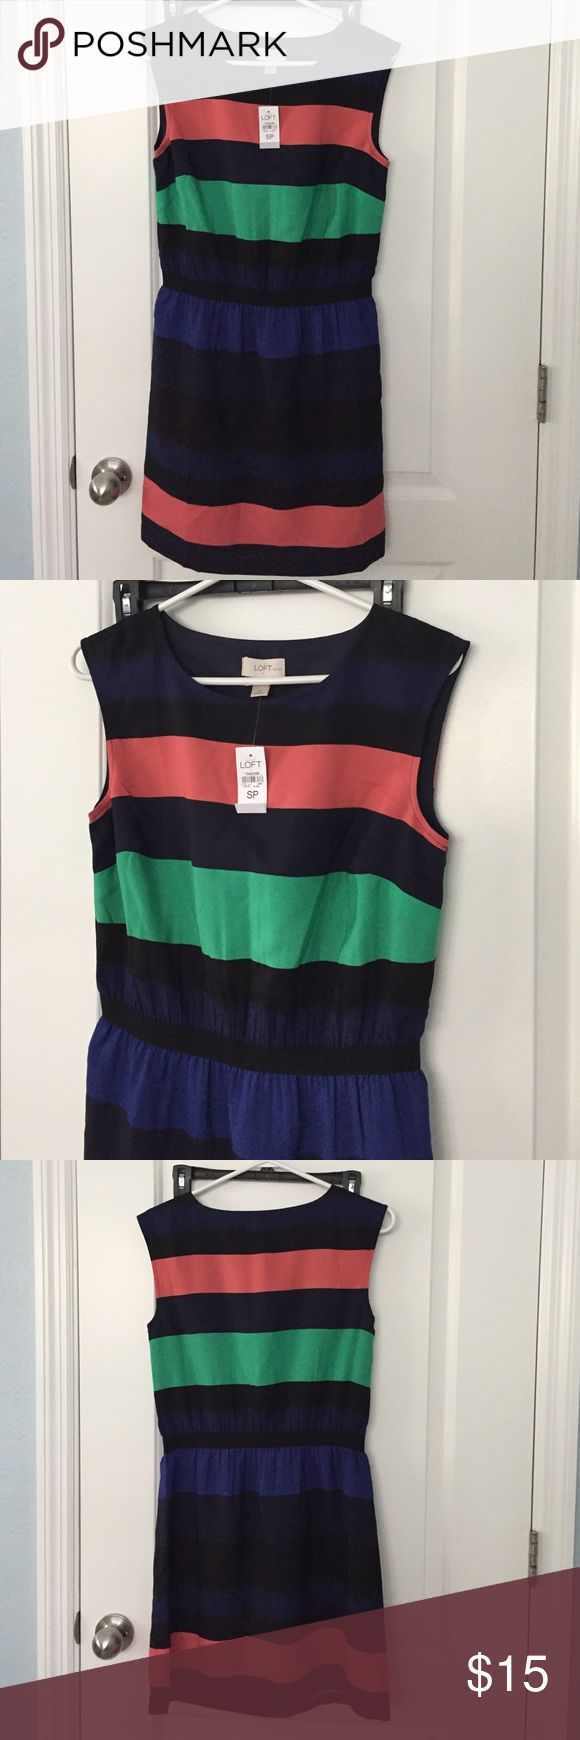 Ann Taylor Loft dress Navy blue striped dress. Purchased from loft outlet store and never wore. LOFT Dresses